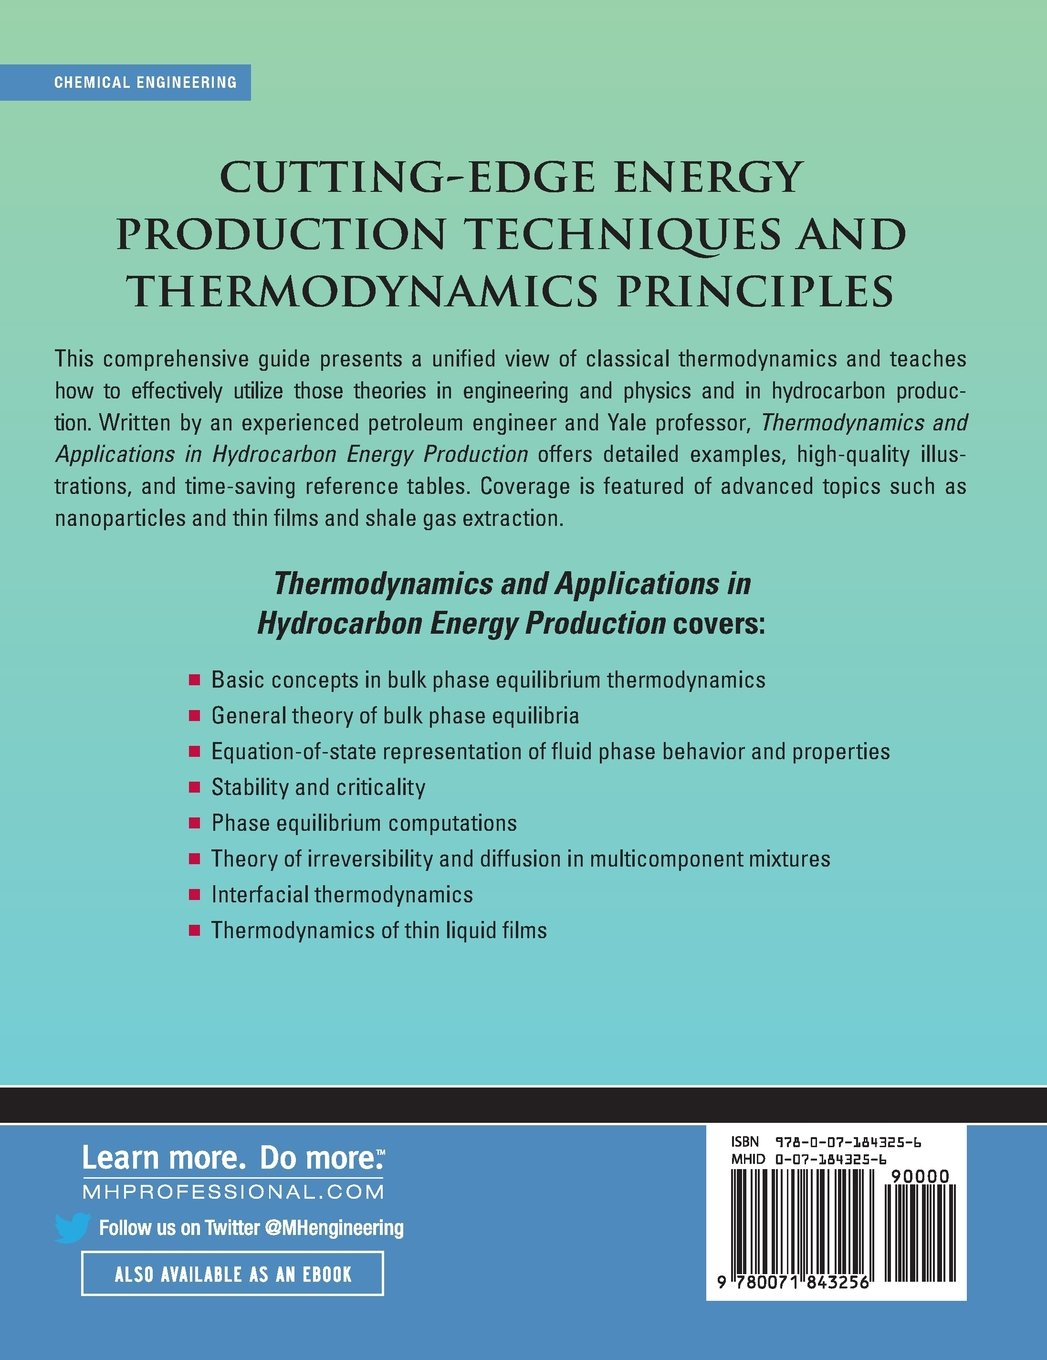 Thermodynamics and applications of hydrocarbons energy production thermodynamics and applications of hydrocarbons energy production abbas firoozabadi 9780071843256 books amazon fandeluxe Gallery